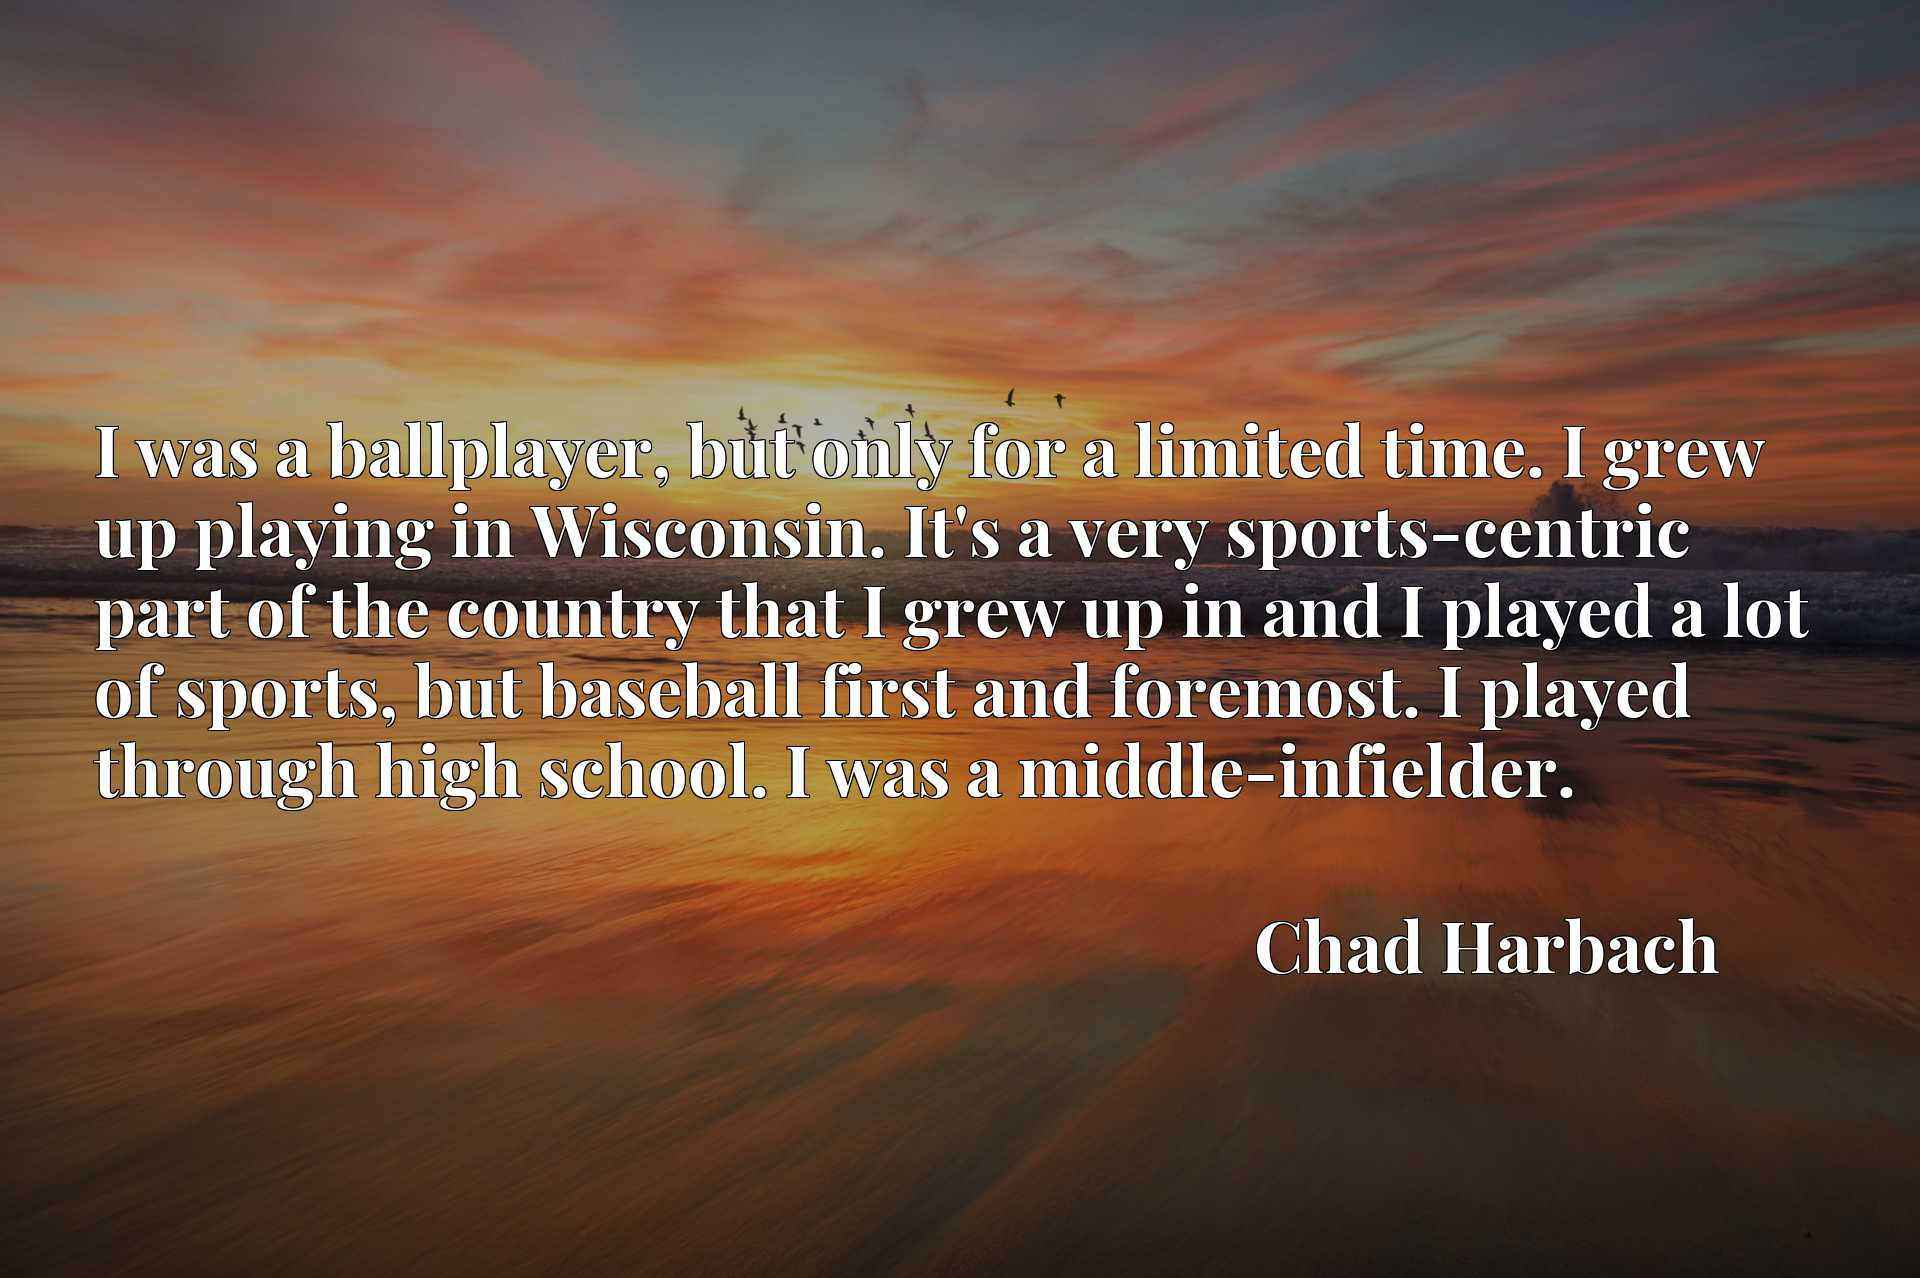 I was a ballplayer, but only for a limited time. I grew up playing in Wisconsin. It's a very sports-centric part of the country that I grew up in and I played a lot of sports, but baseball first and foremost. I played through high school. I was a middle-infielder.